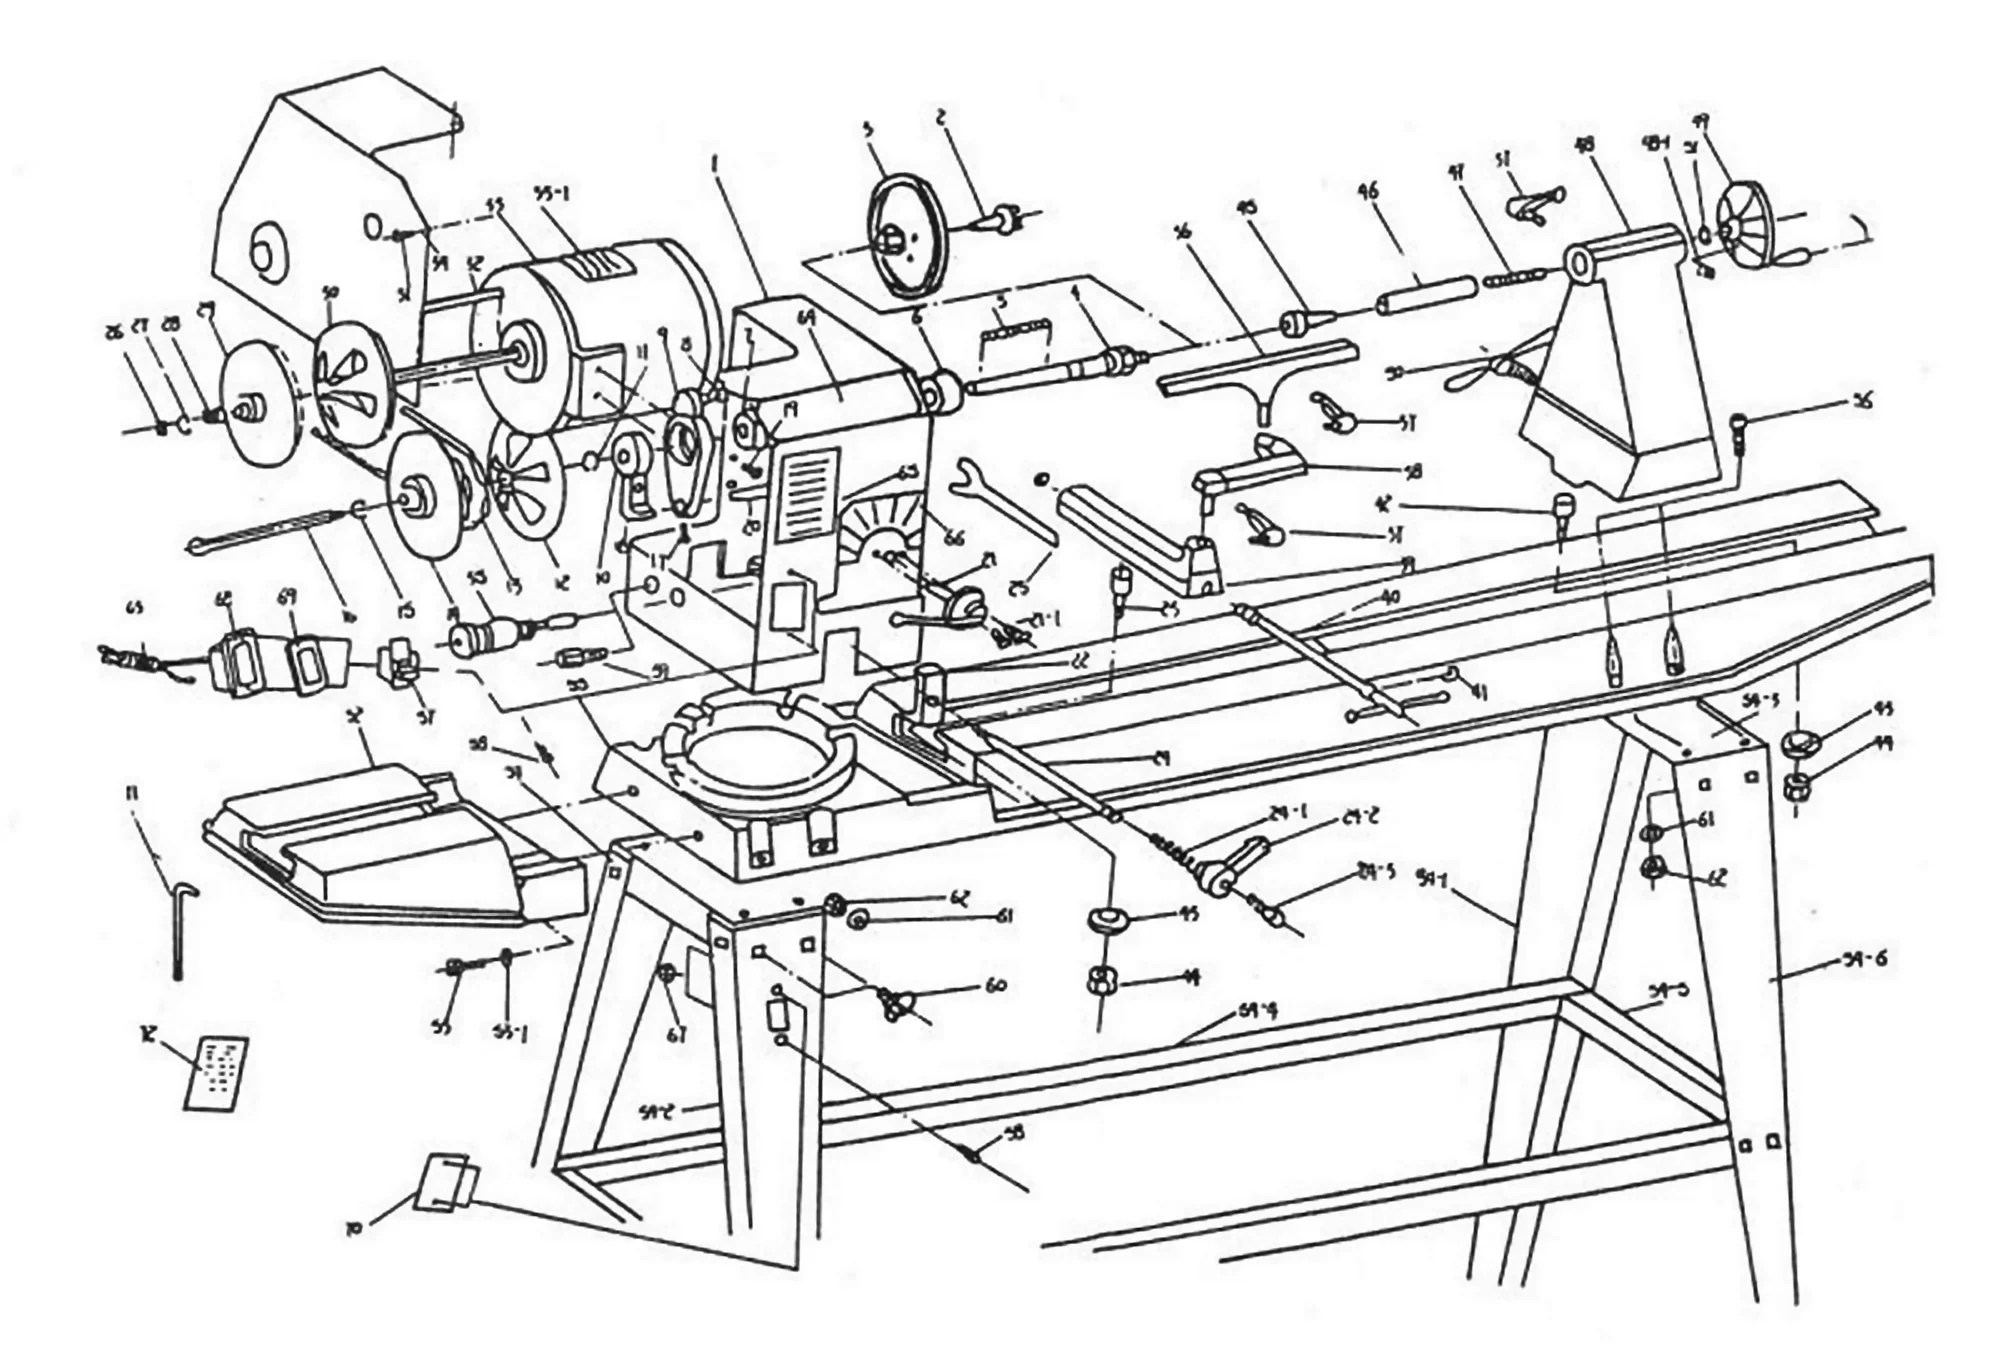 Sip 36 Swivel Head Wood Lathe Diagram